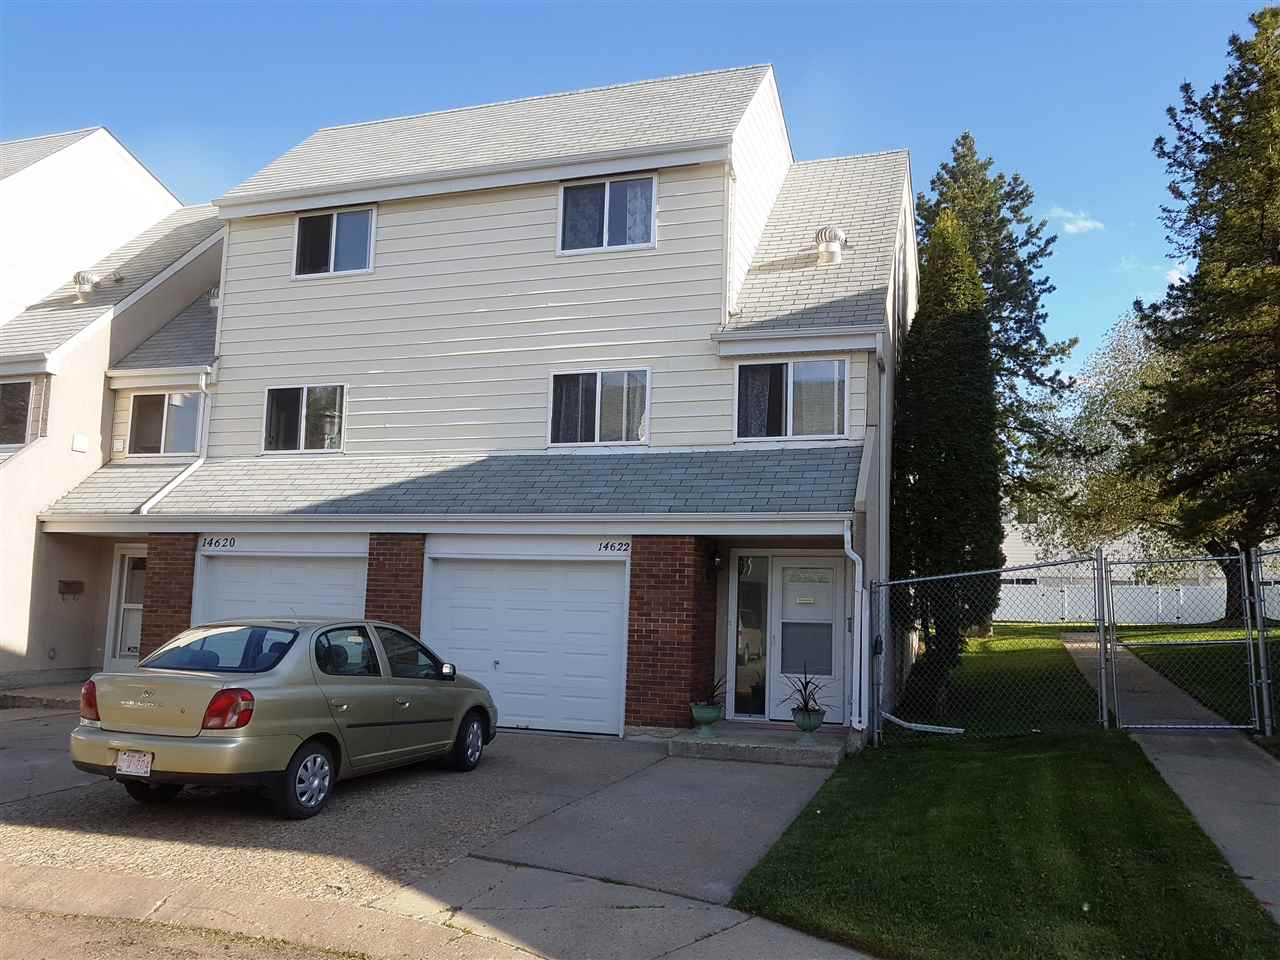 Main Photo: 14622 52 Street in Edmonton: Zone 02 Townhouse for sale : MLS(r) # E4065654